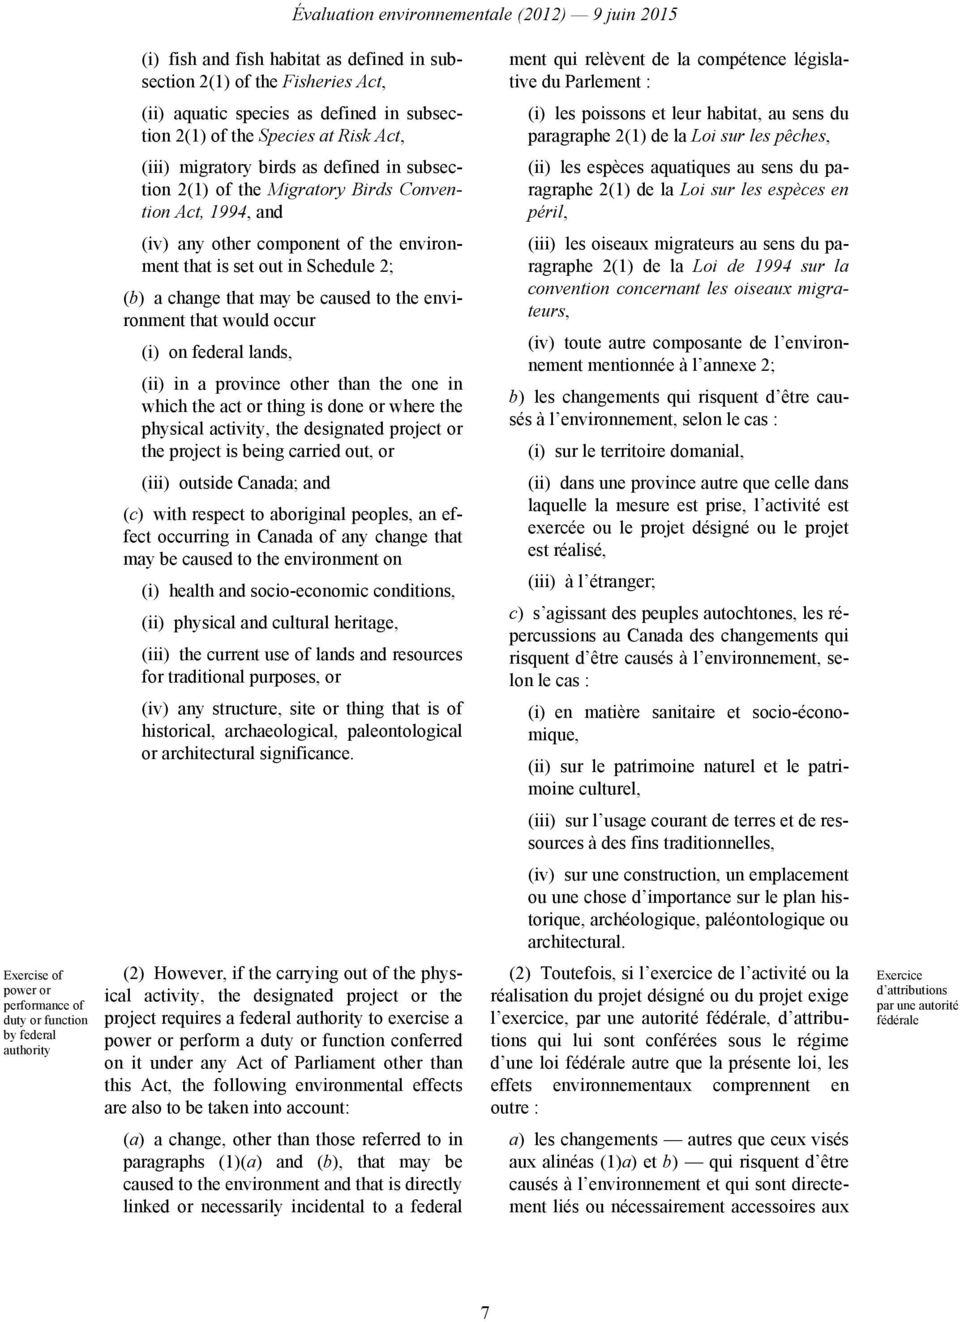 2(1) of the Migratory Birds Convention Act, 1994, and (ii) les espèces aquatiques au sens du paragraphe 2(1) de la Loi sur les espèces en péril, (iv) any other component of the environment that is